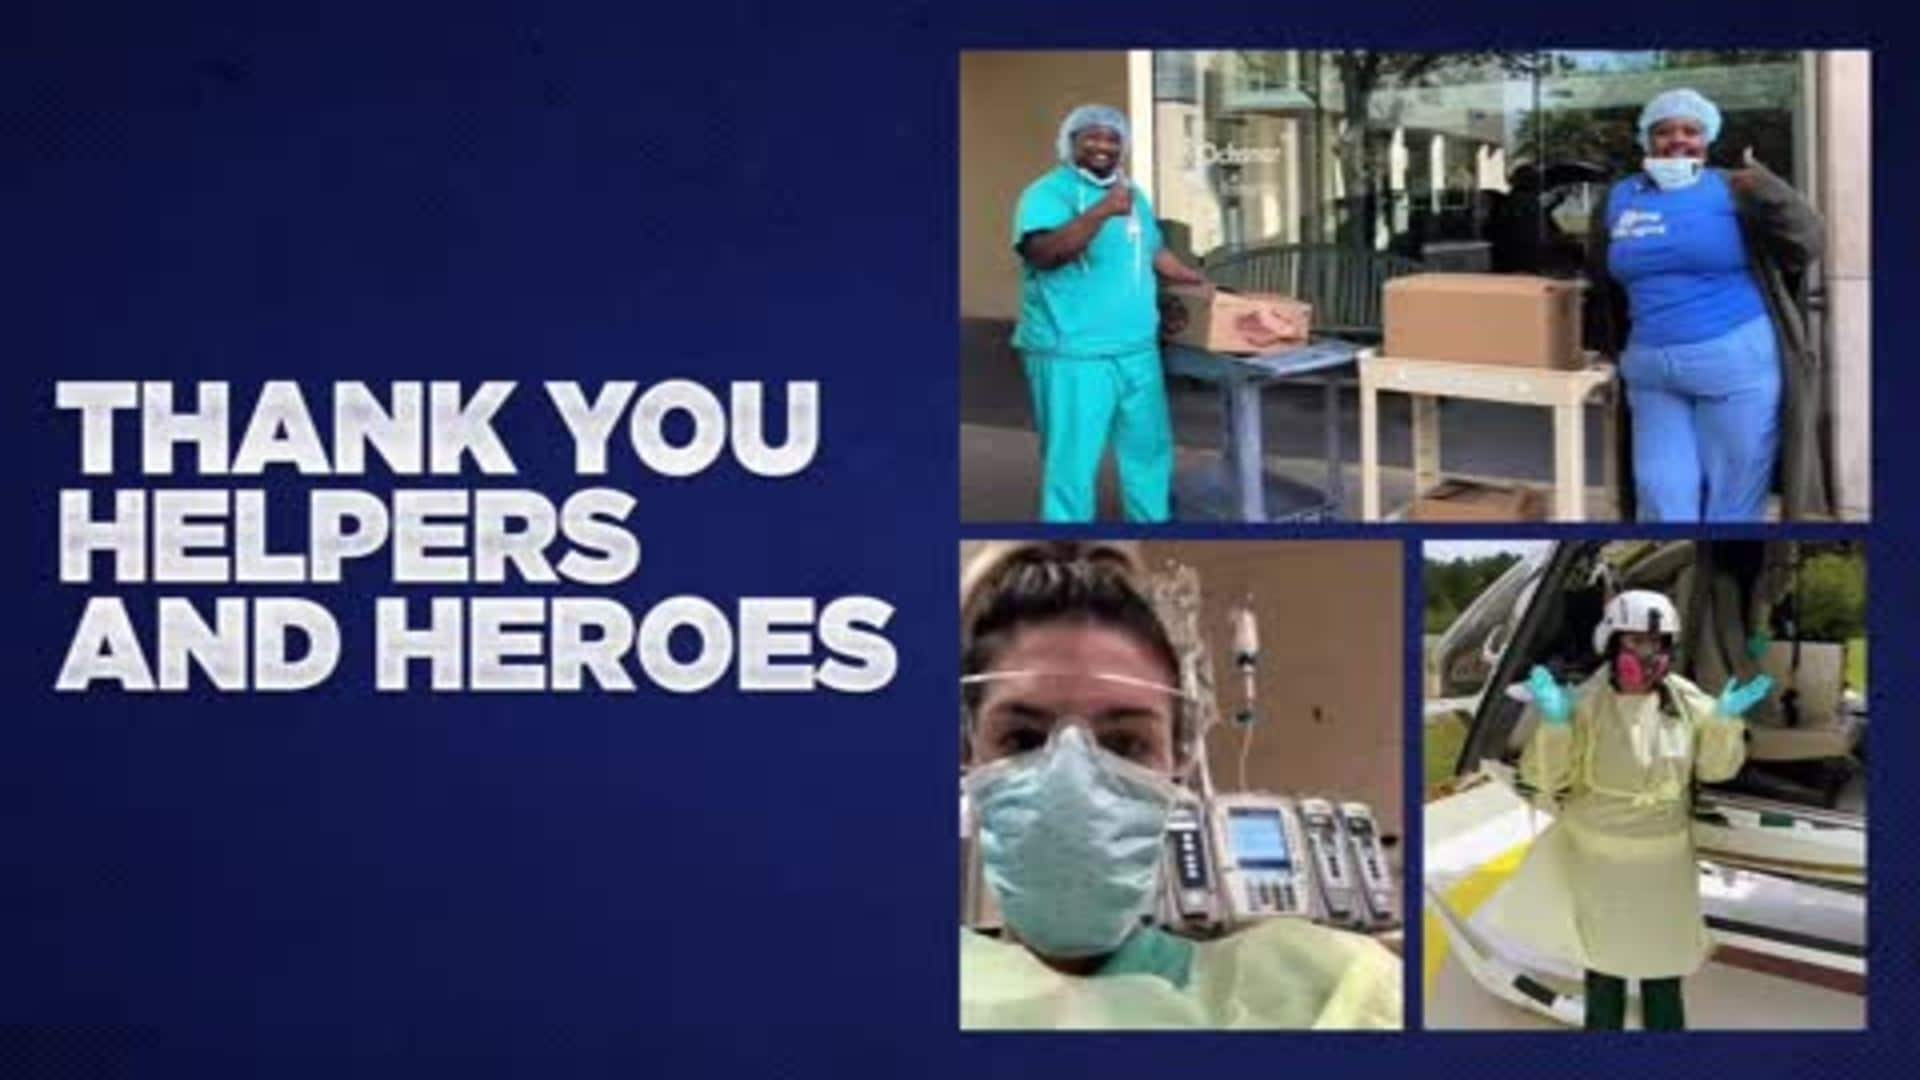 THANK YOU: Pelicans thank our local helpers and heroes